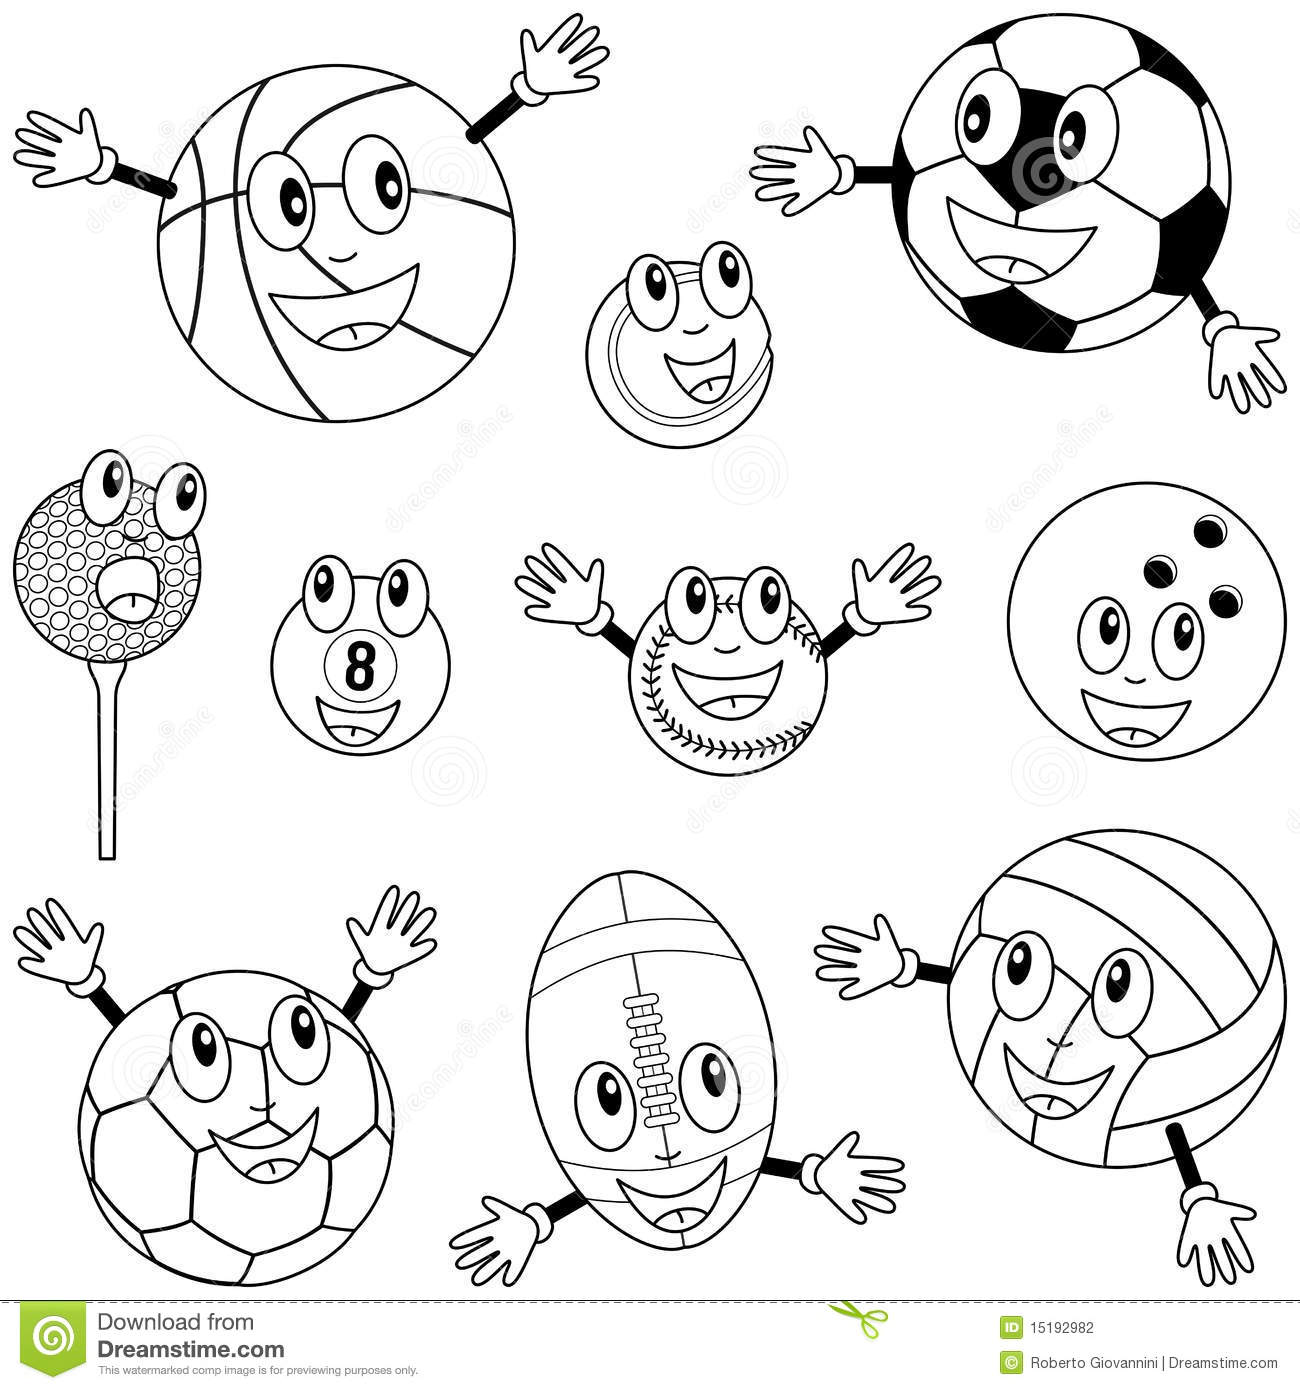 T ball coloring pages - Coloring Sport Balls Characters Beyblade Coloring Pages 14printablecoloring Pages